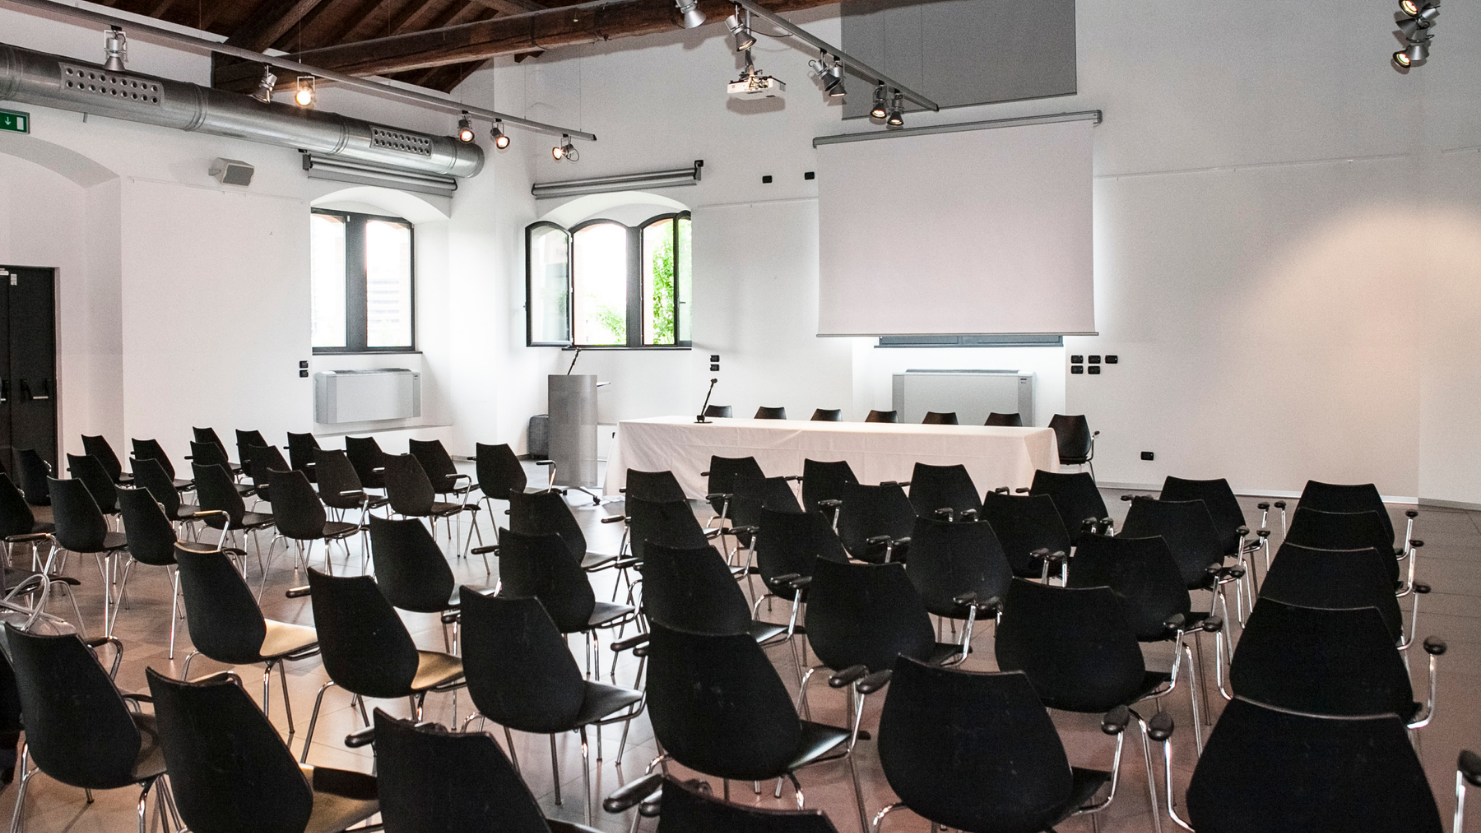 The stage is set for Sustainablility Innovation Days 2019